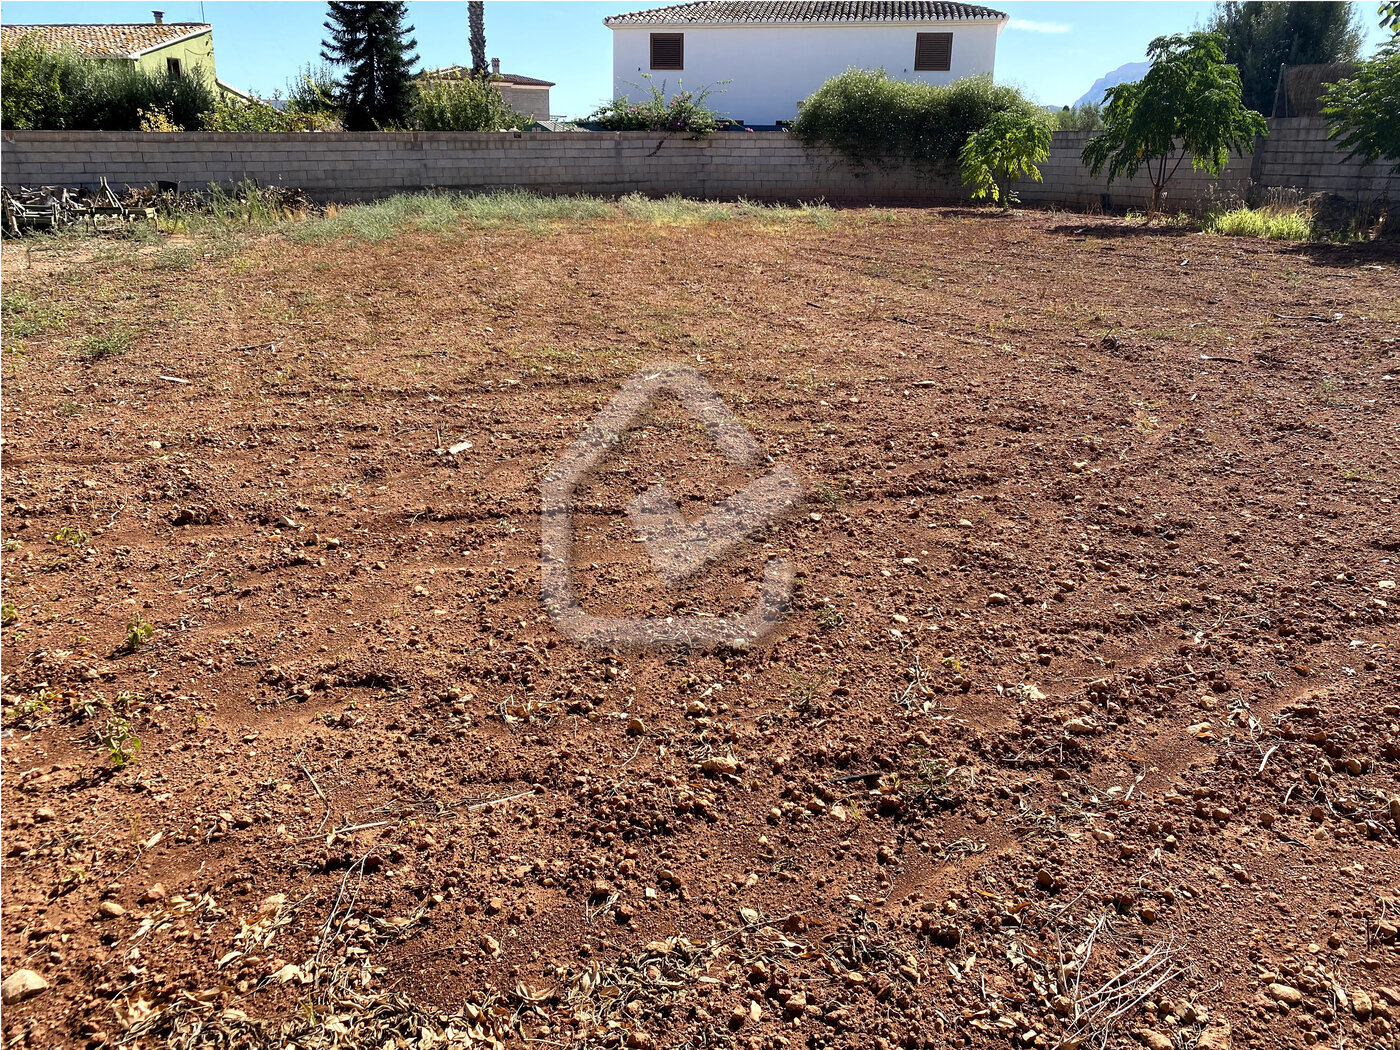 Photo  number 4: Land / Ground in Sale in Ondara, Area Centro. Ref. 5-36-14905